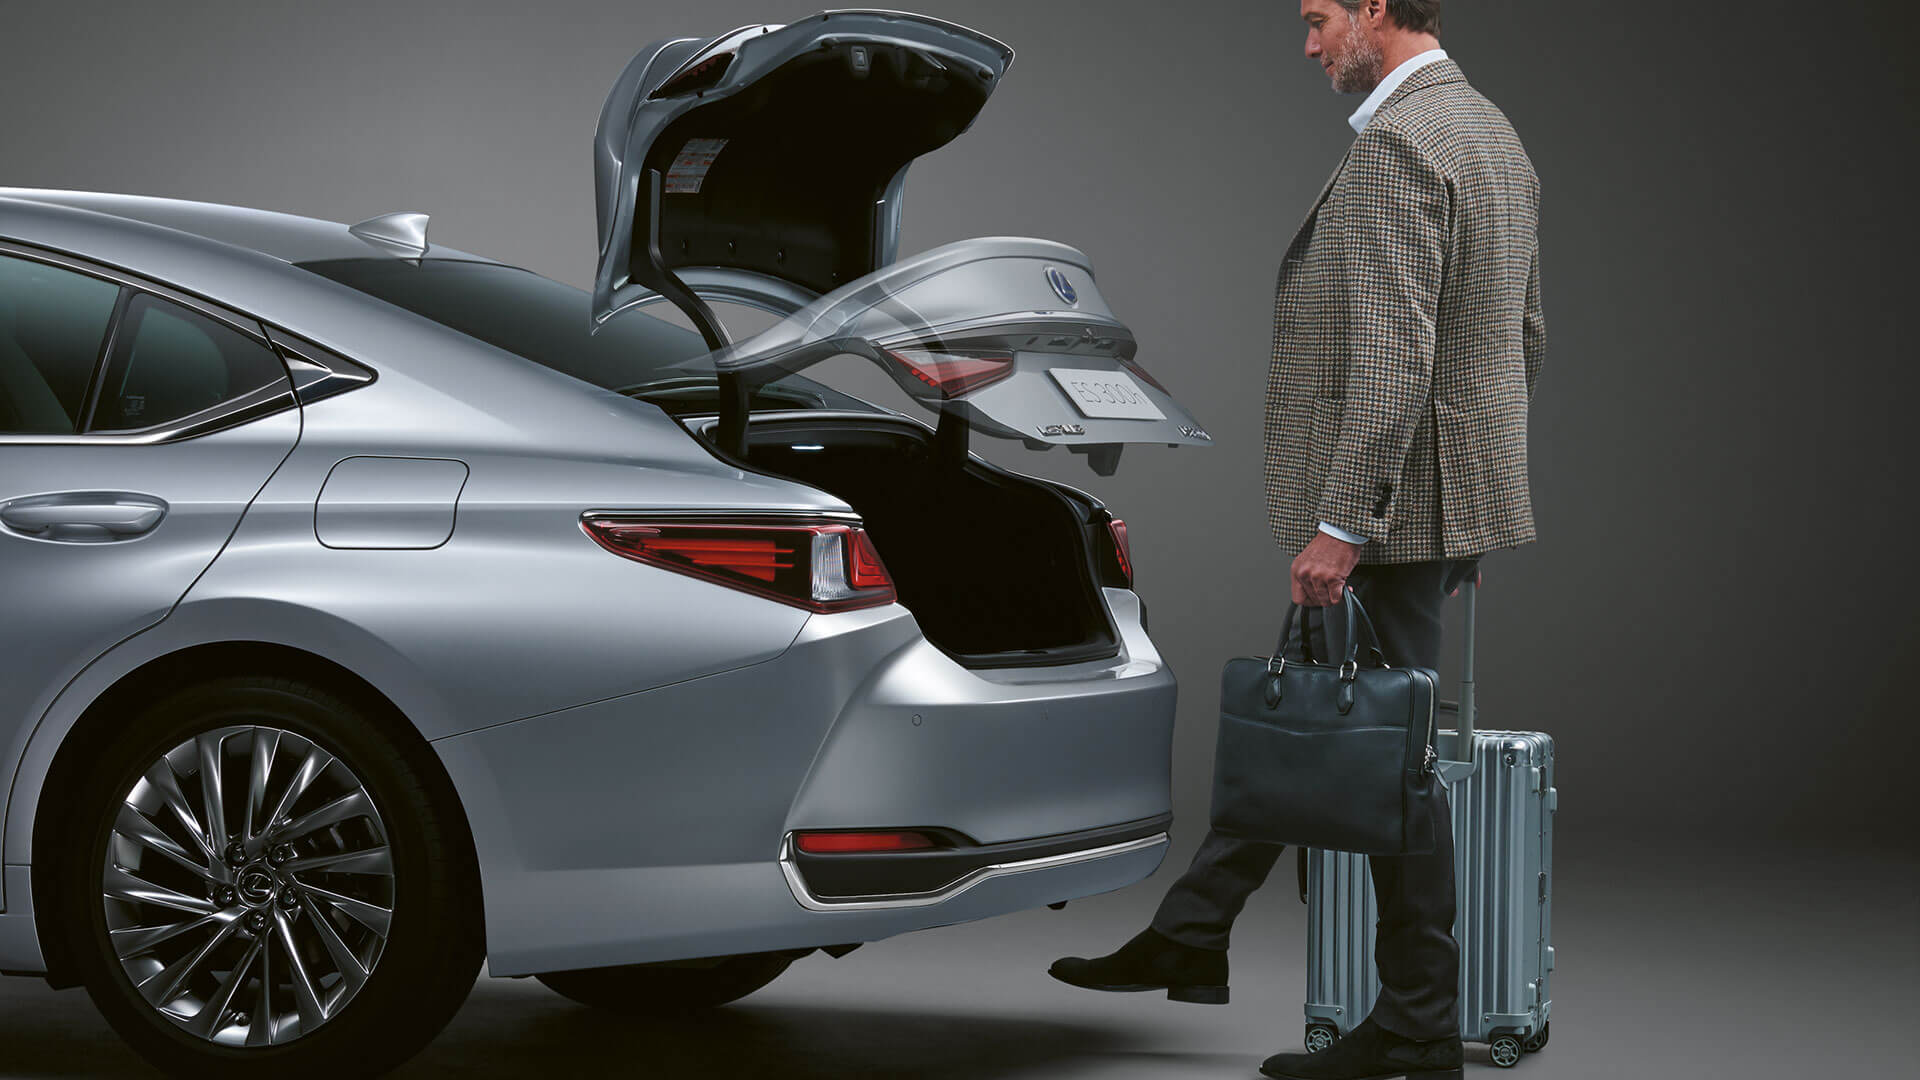 2019 lexus es hybrid experience feature hands free power boot lid